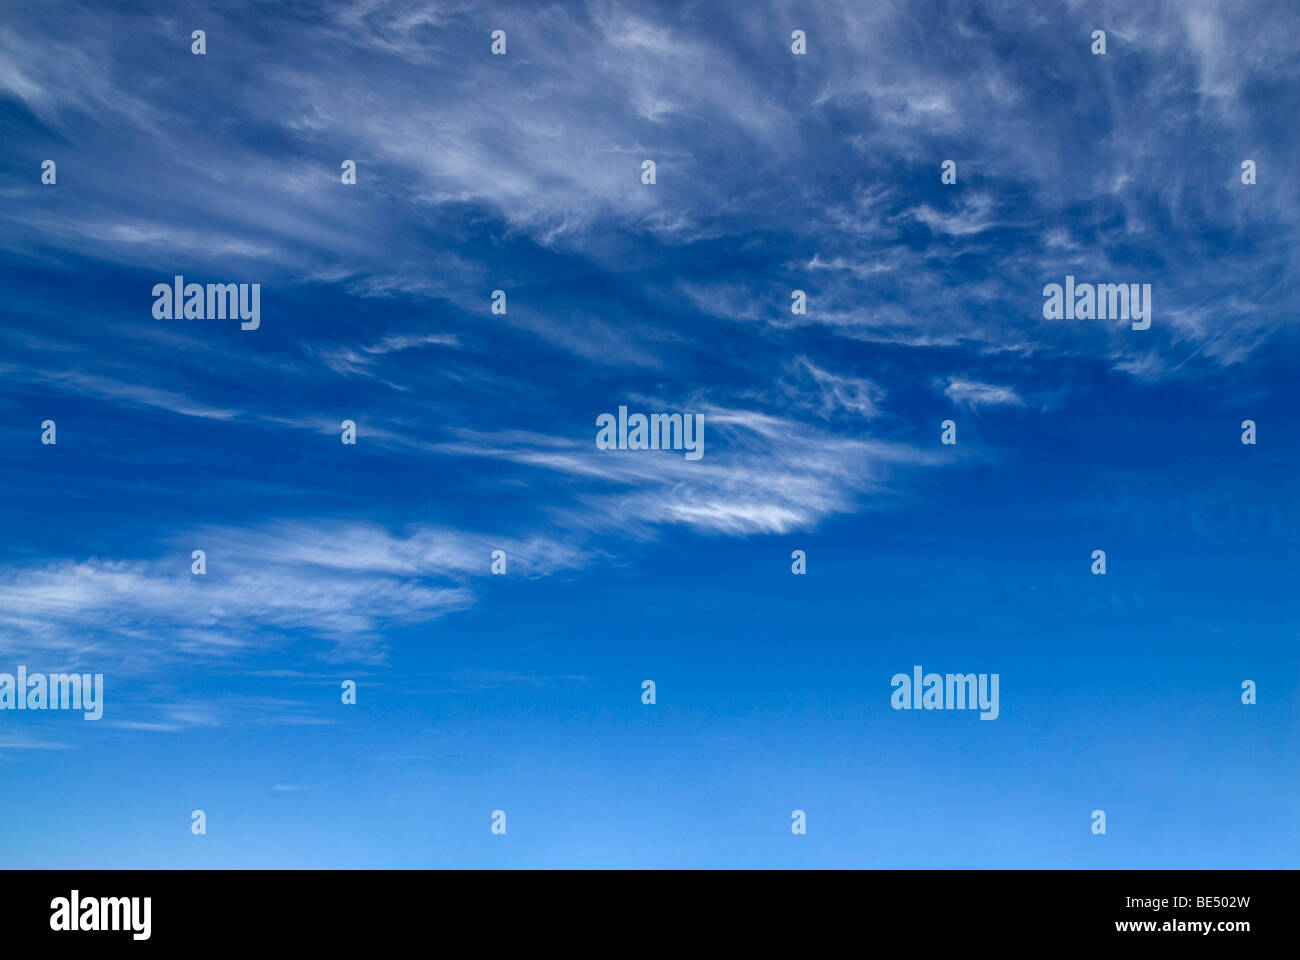 Veil of clouds against a blue sky - Stock Image